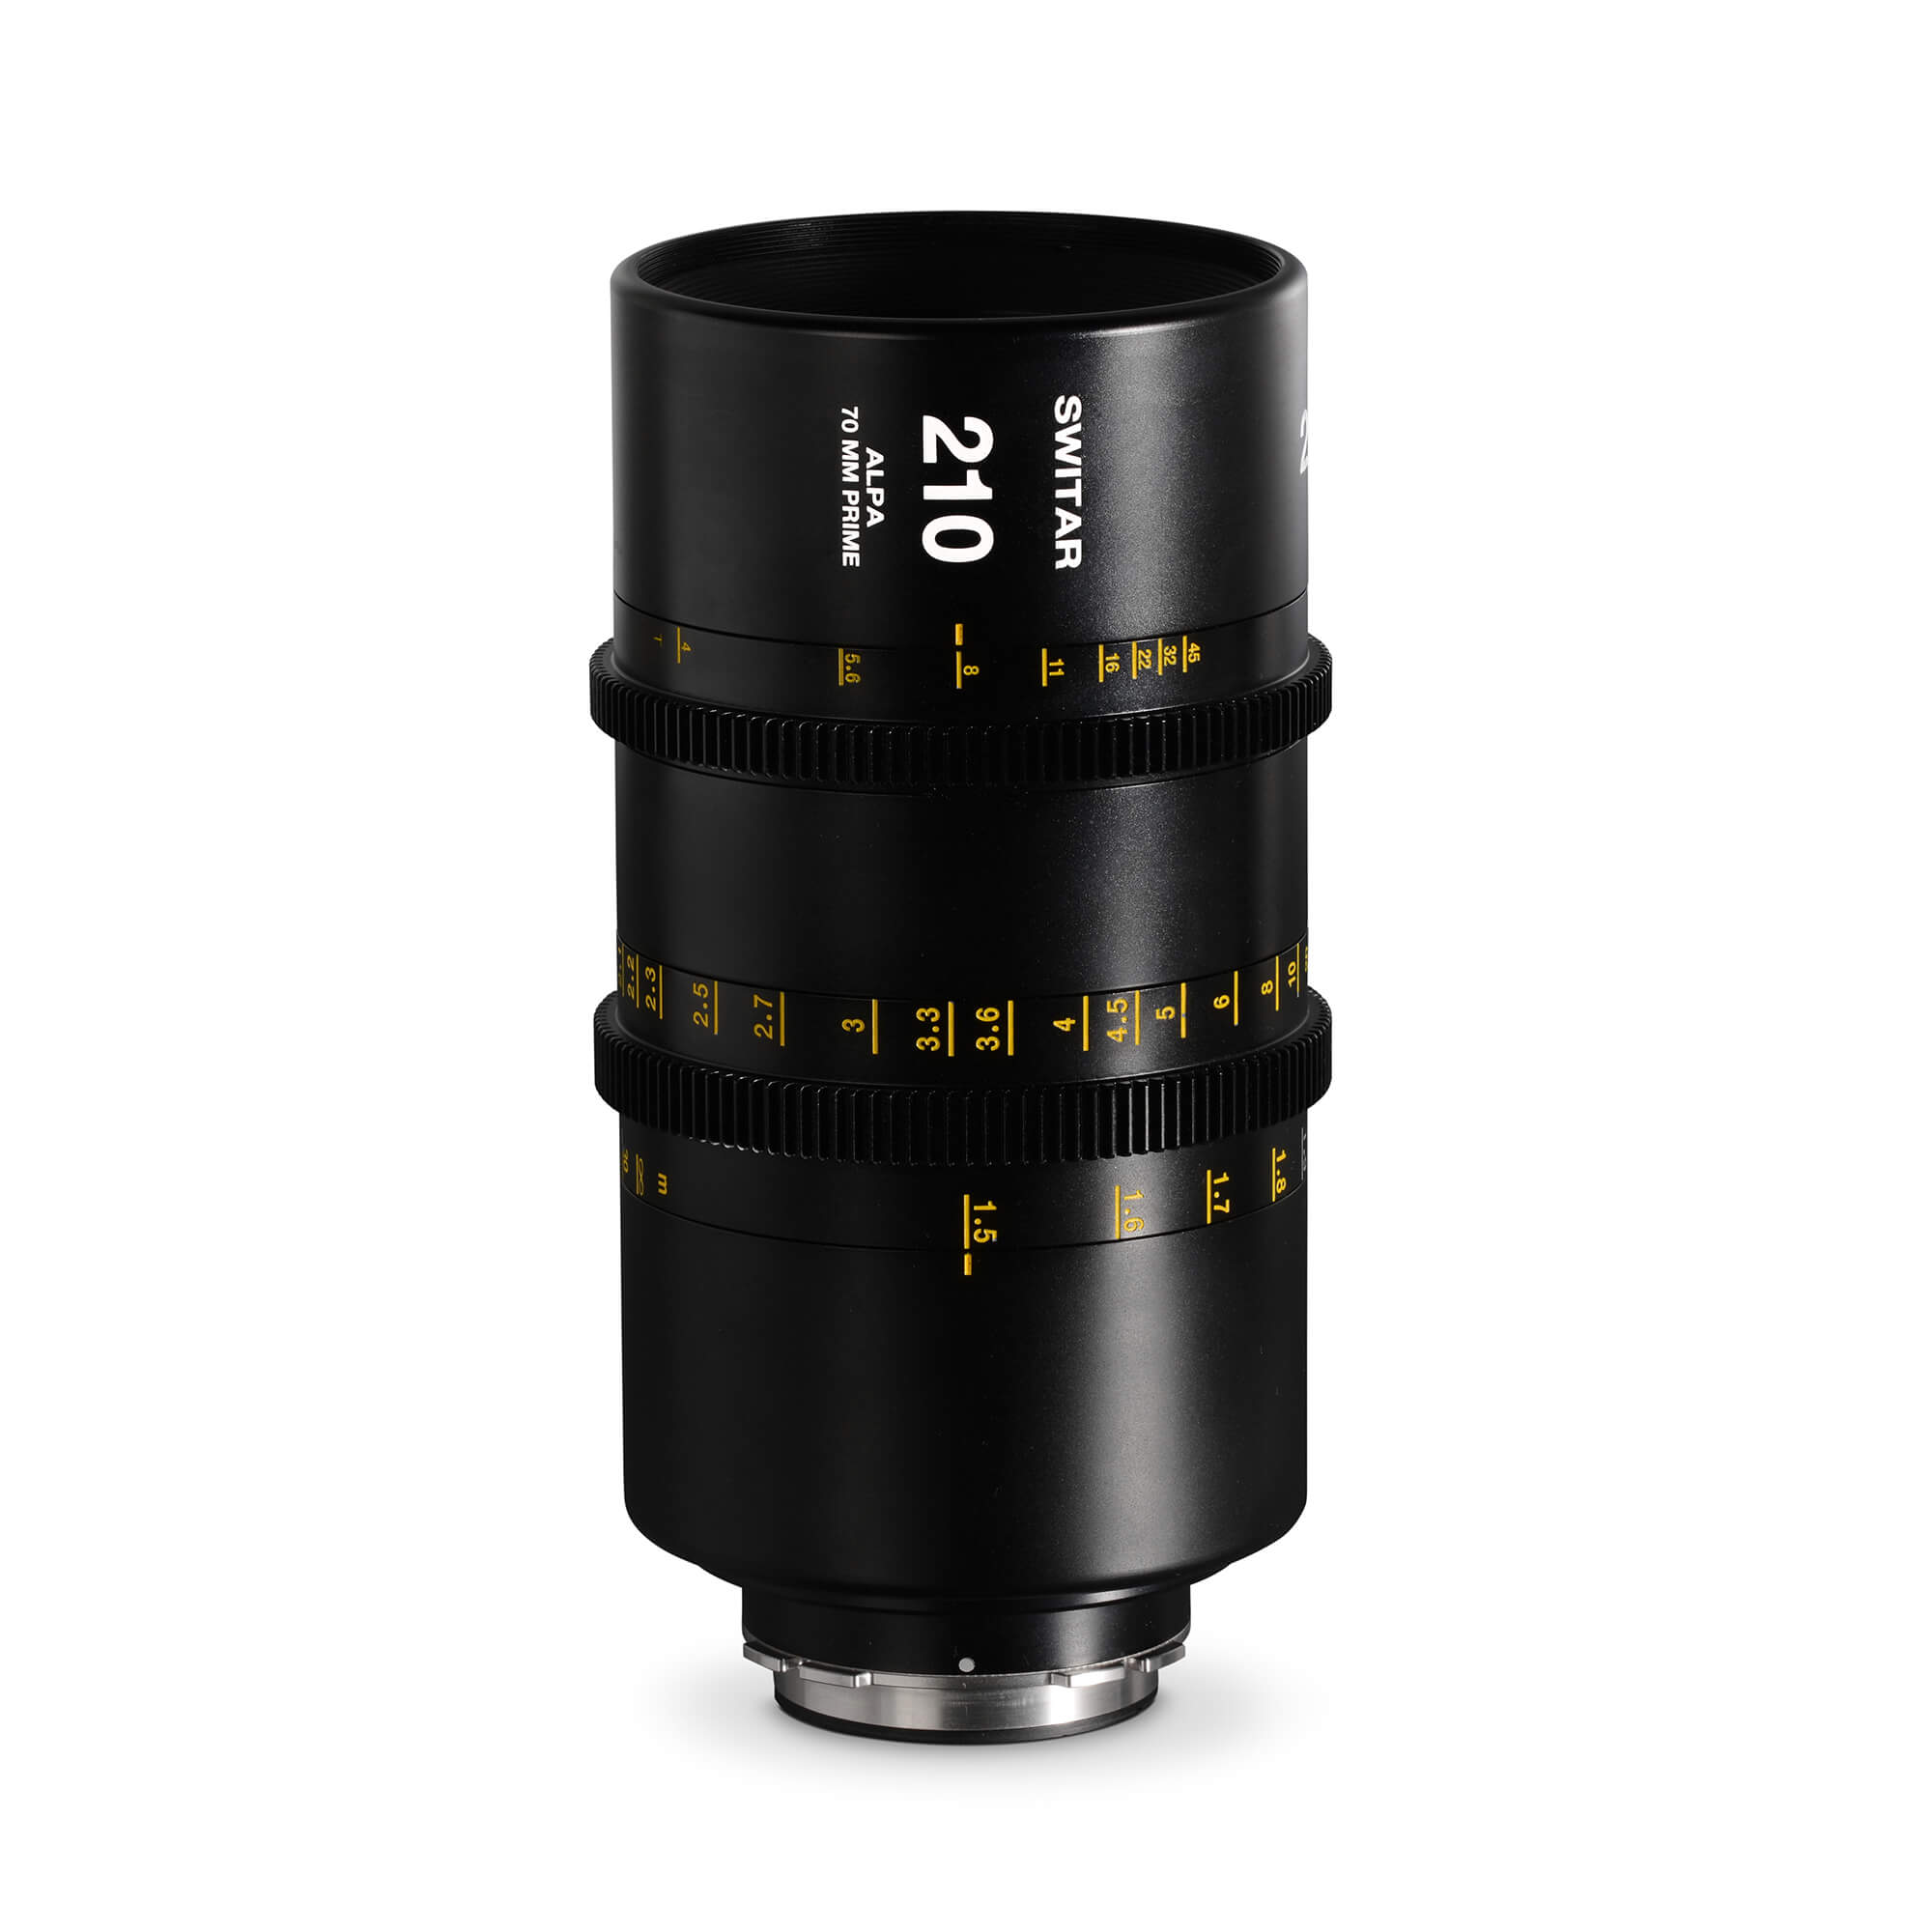 ALPA Switar 4.0/210 mm Cine Prime IC 70 mm - feet